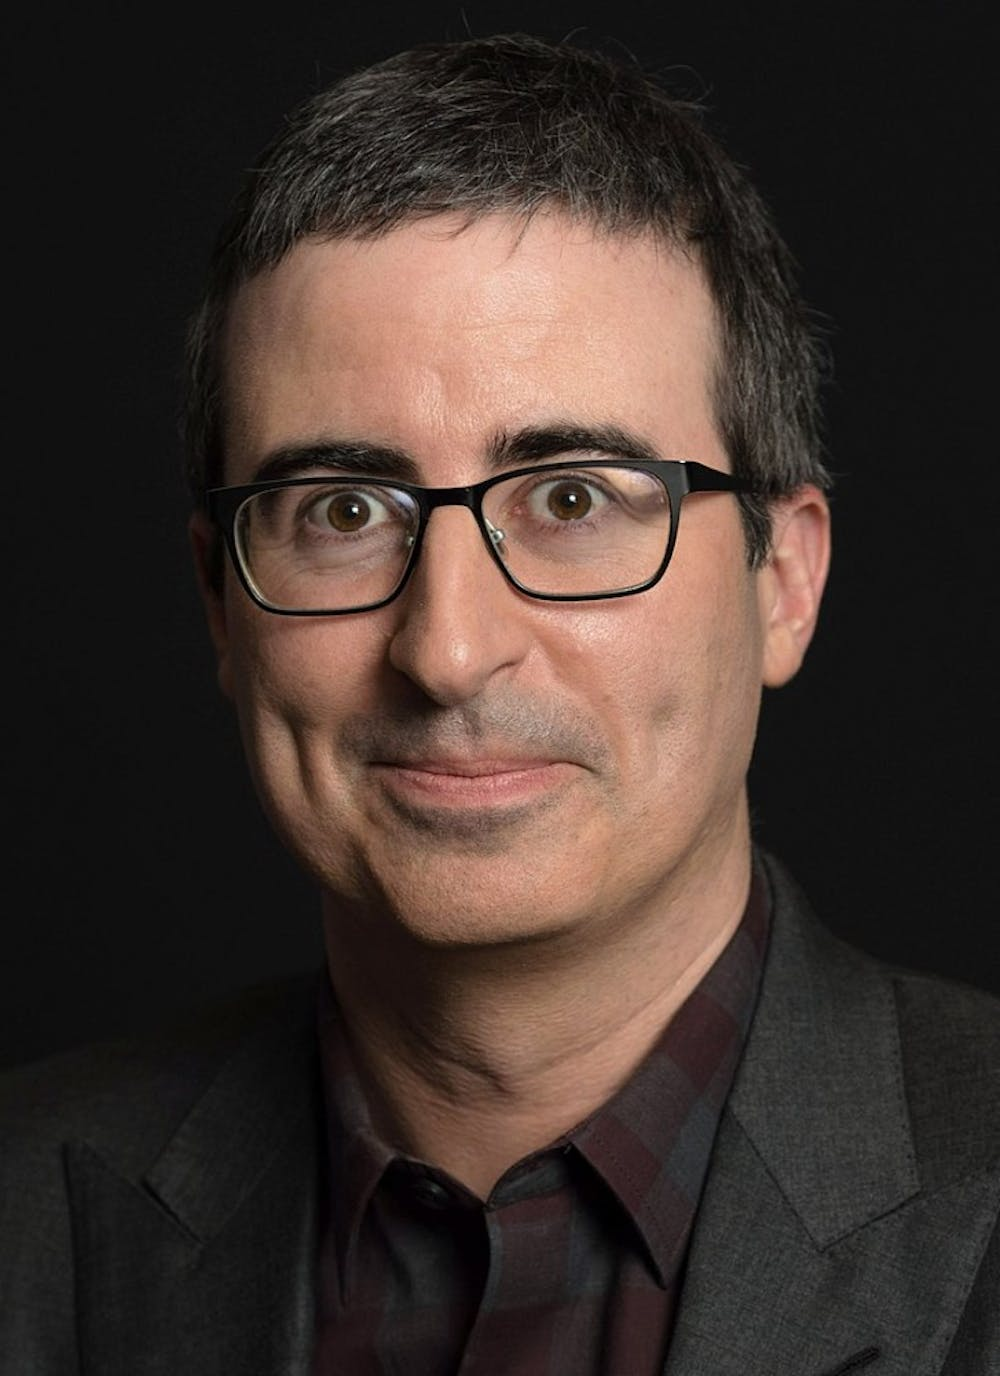 ae-lastweektonight-courtesywikimediacommons